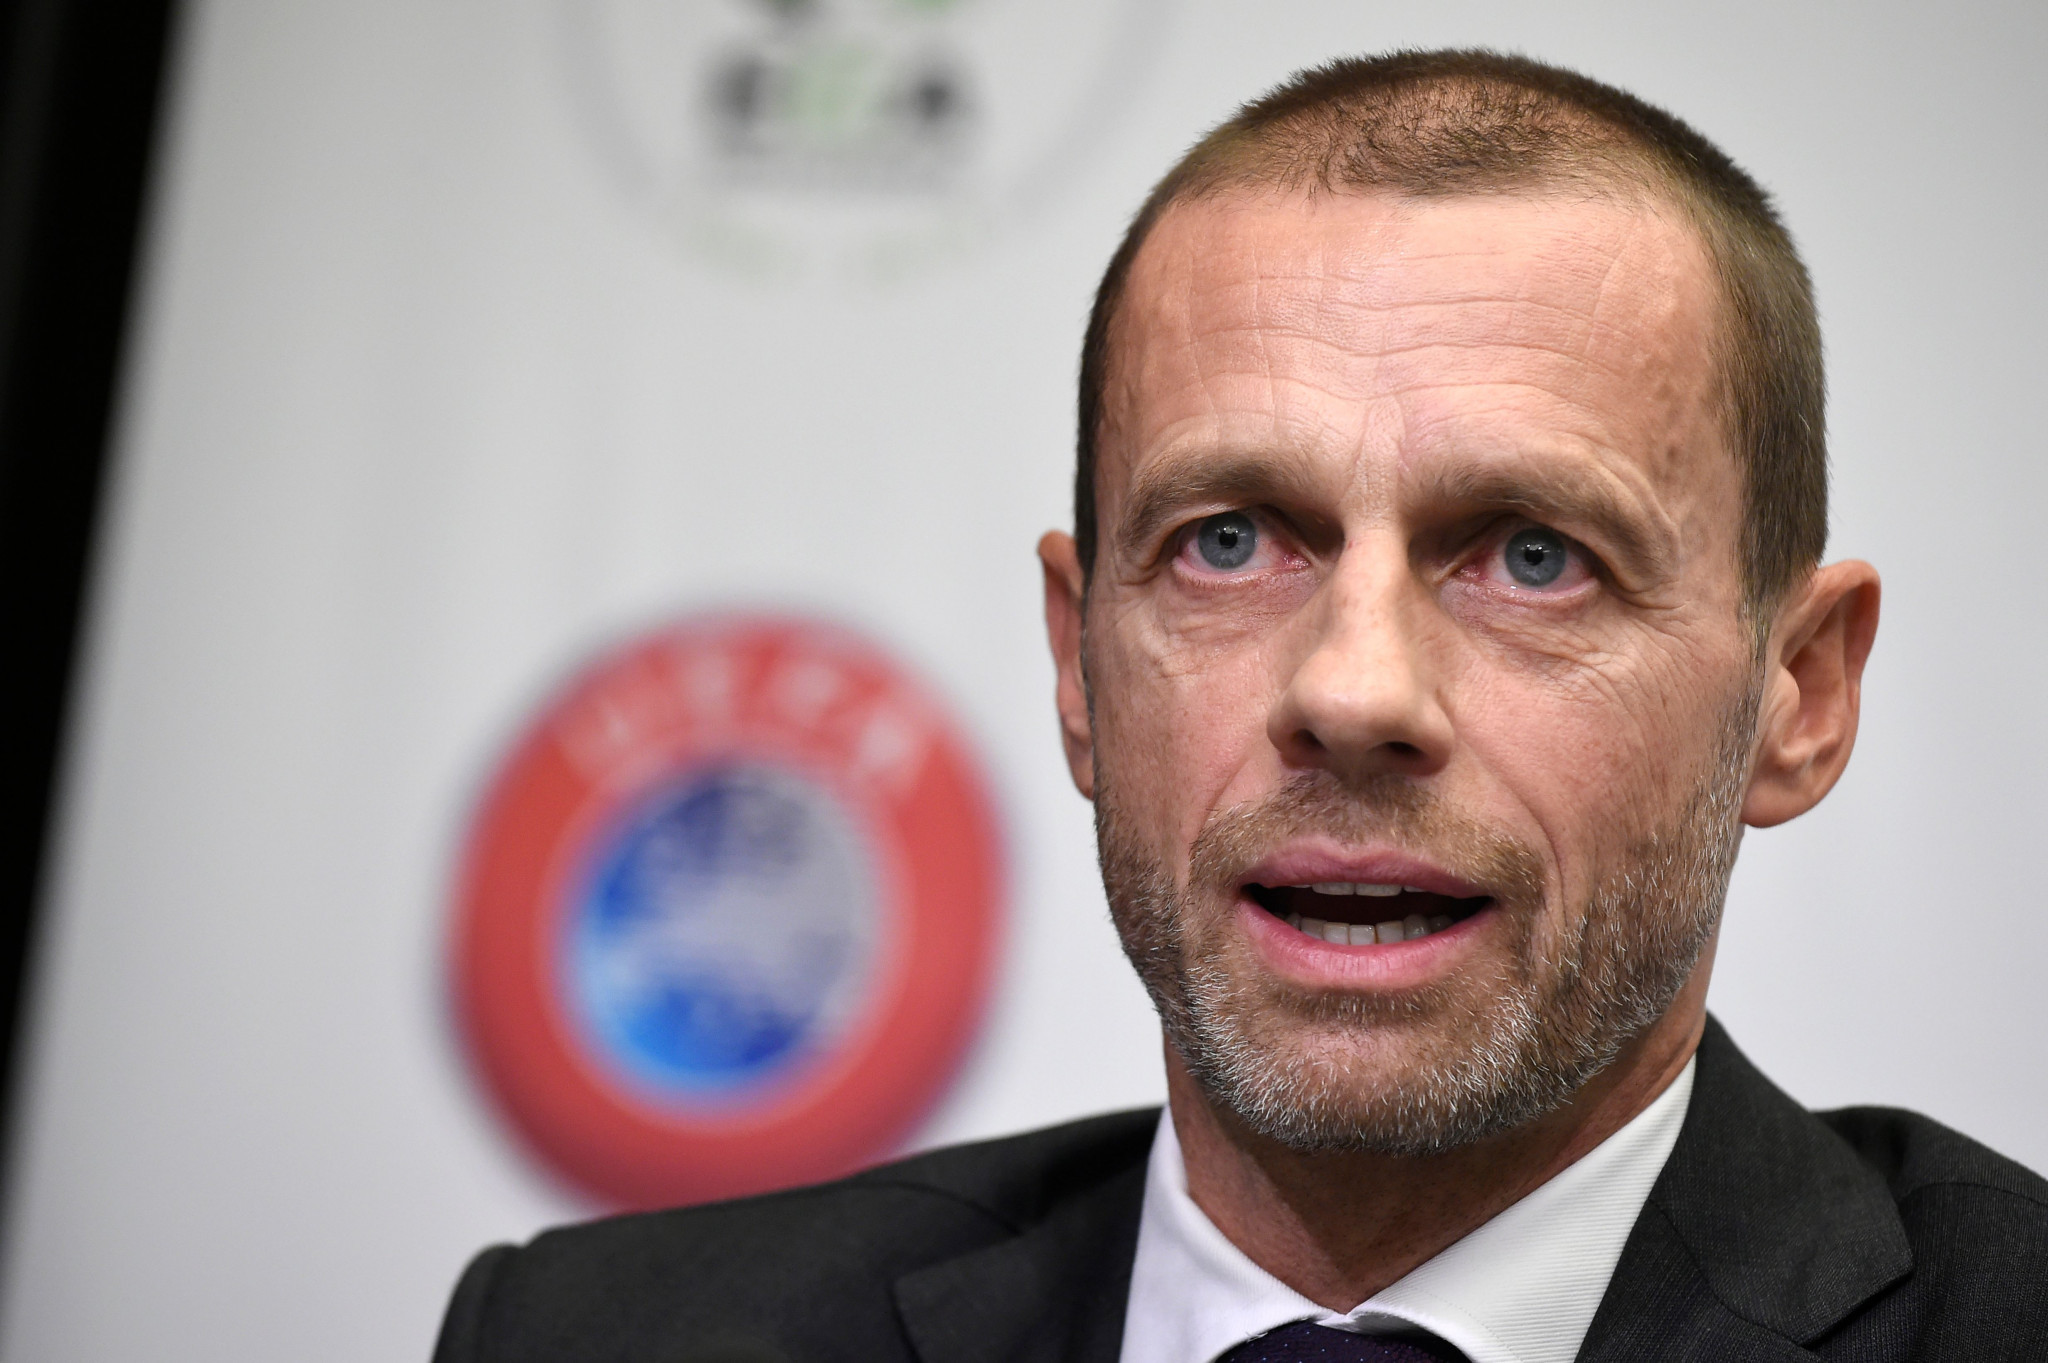 UEFA President Aleksander Čeferin has expressed his opposition to the biennial World Cup plans ©Getty Images